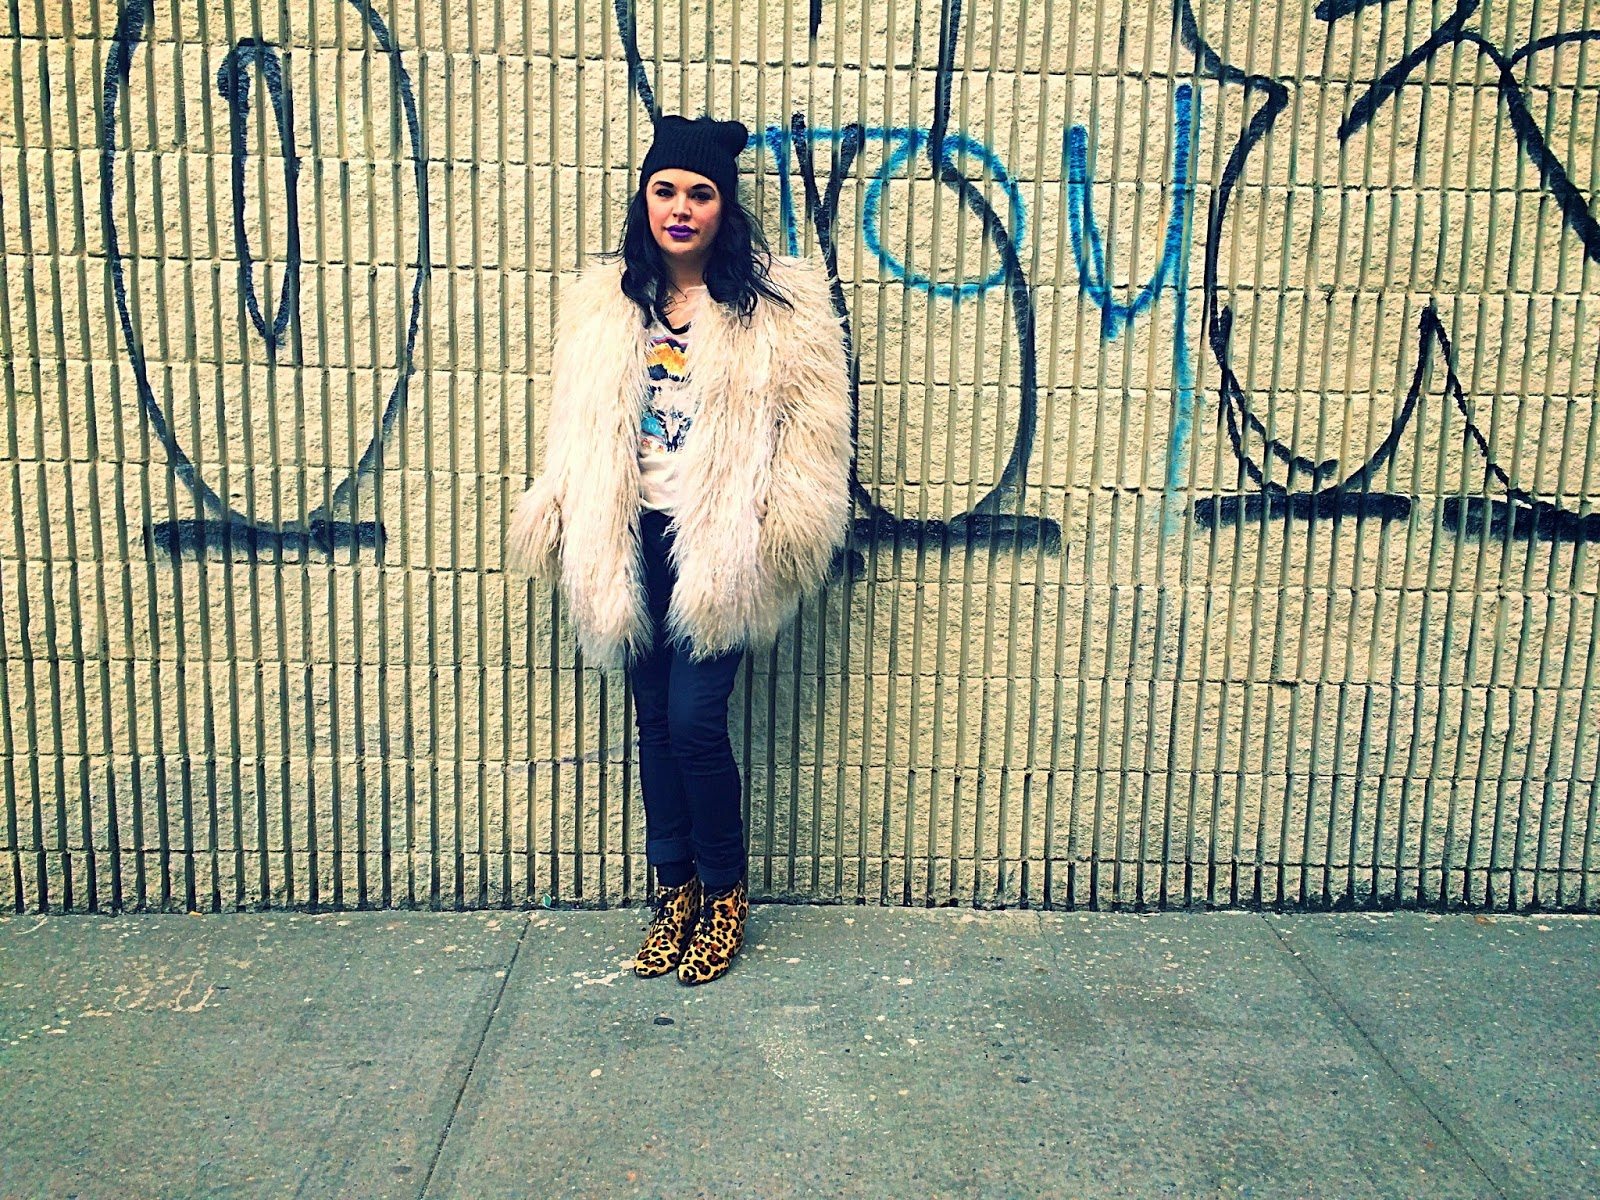 Olivia Inkster, rock n roll inspiration, vintage shag rocker, Brooklyn rocker outfit, NYC best bloggers, Brooklyn graffiti wall art, rocknroll fur coat, leopard booties with outfit, kate spade outfit leopard, girl in black beanie, hipster black beanie, Williamsburg Brooklyn